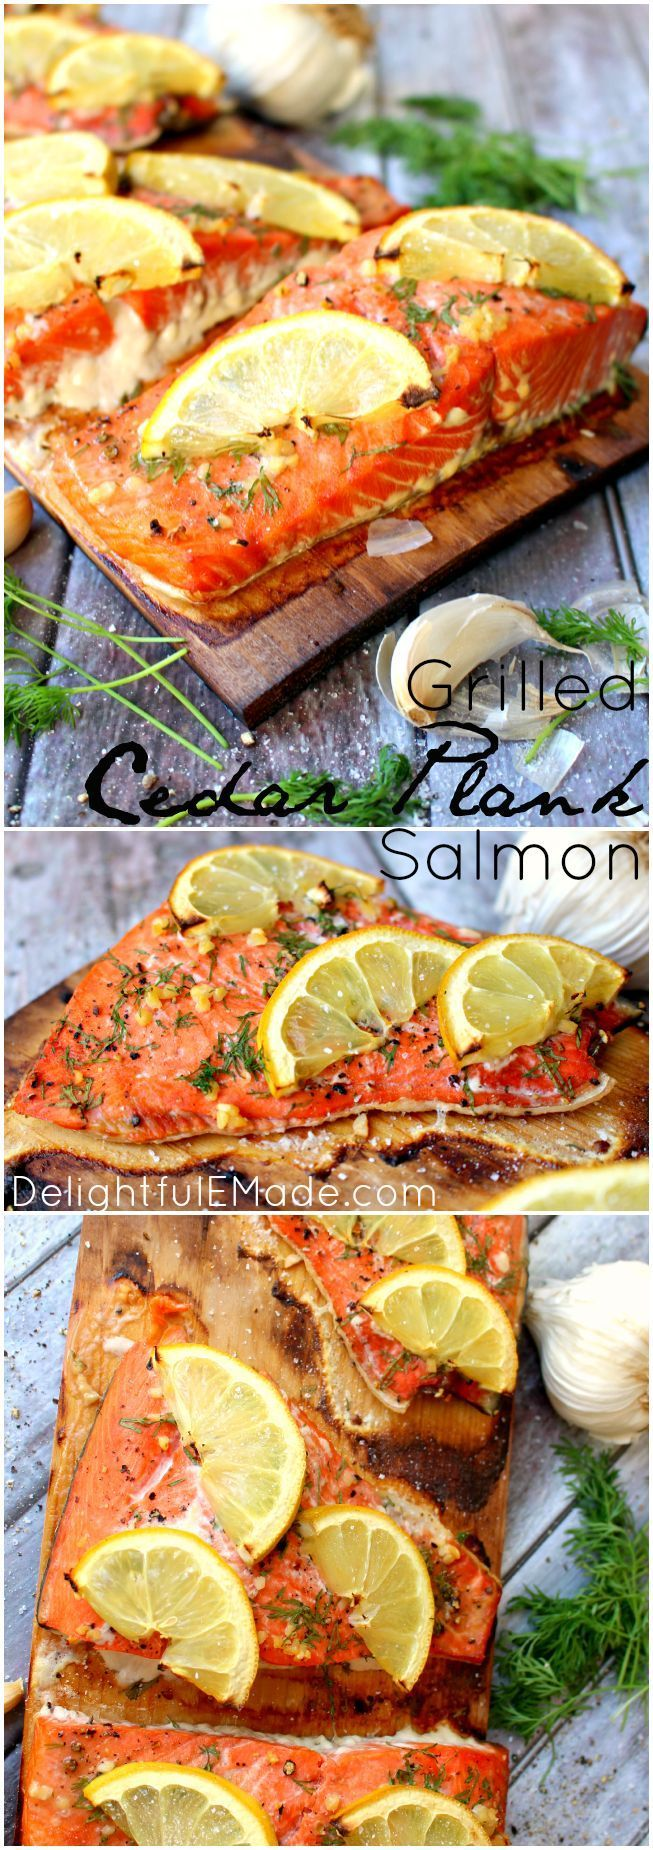 This is one of the most flavorful ways to grill!! Grilled Cedar Plank Salmon is not only healthy, but tastes amazing, and is very easy to prepare!